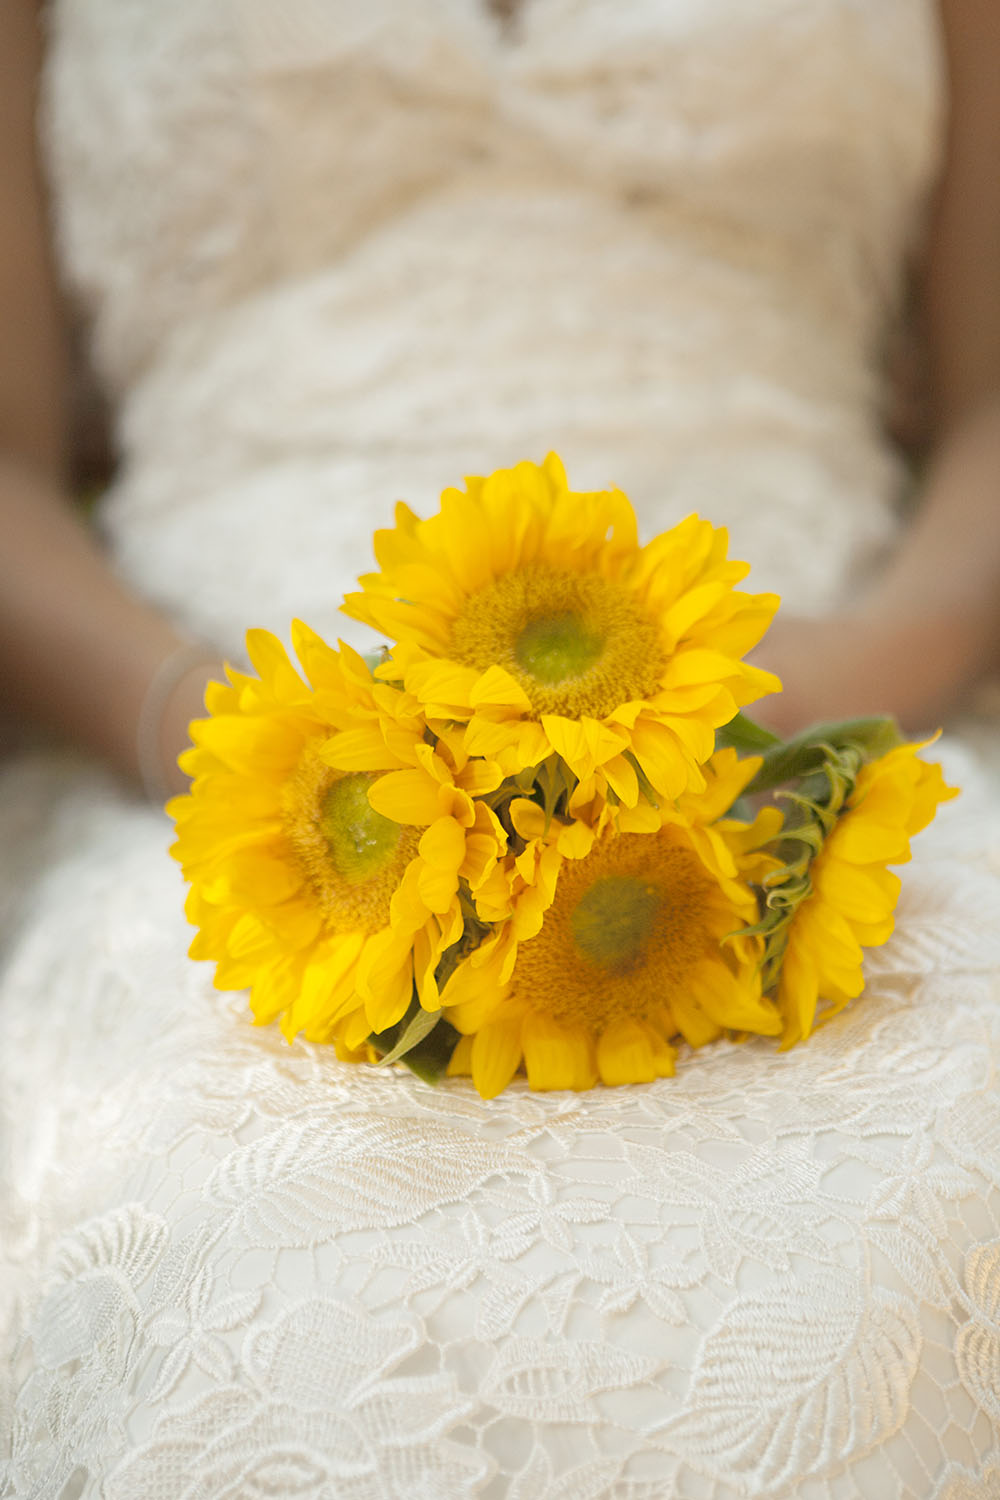 On a sultry July evening, Angela and Danny celebrated their marriage with a reception held at the beautiful  Orcutt Ranch  in West Hills. The theme was sunflowers, a wonderful and joyful motif for a mid summer day! The couple even had edible custom heart and sunflower toppers on their cupcakes and cutting cake by Adrienne of  Kreative Kakes 4U . Co-ordination and decorations were done by Christine at  Lalonde Events . The gorgeous couple had married at the courthouse the day before and wanted a simple and intimate celebration with family and friends.